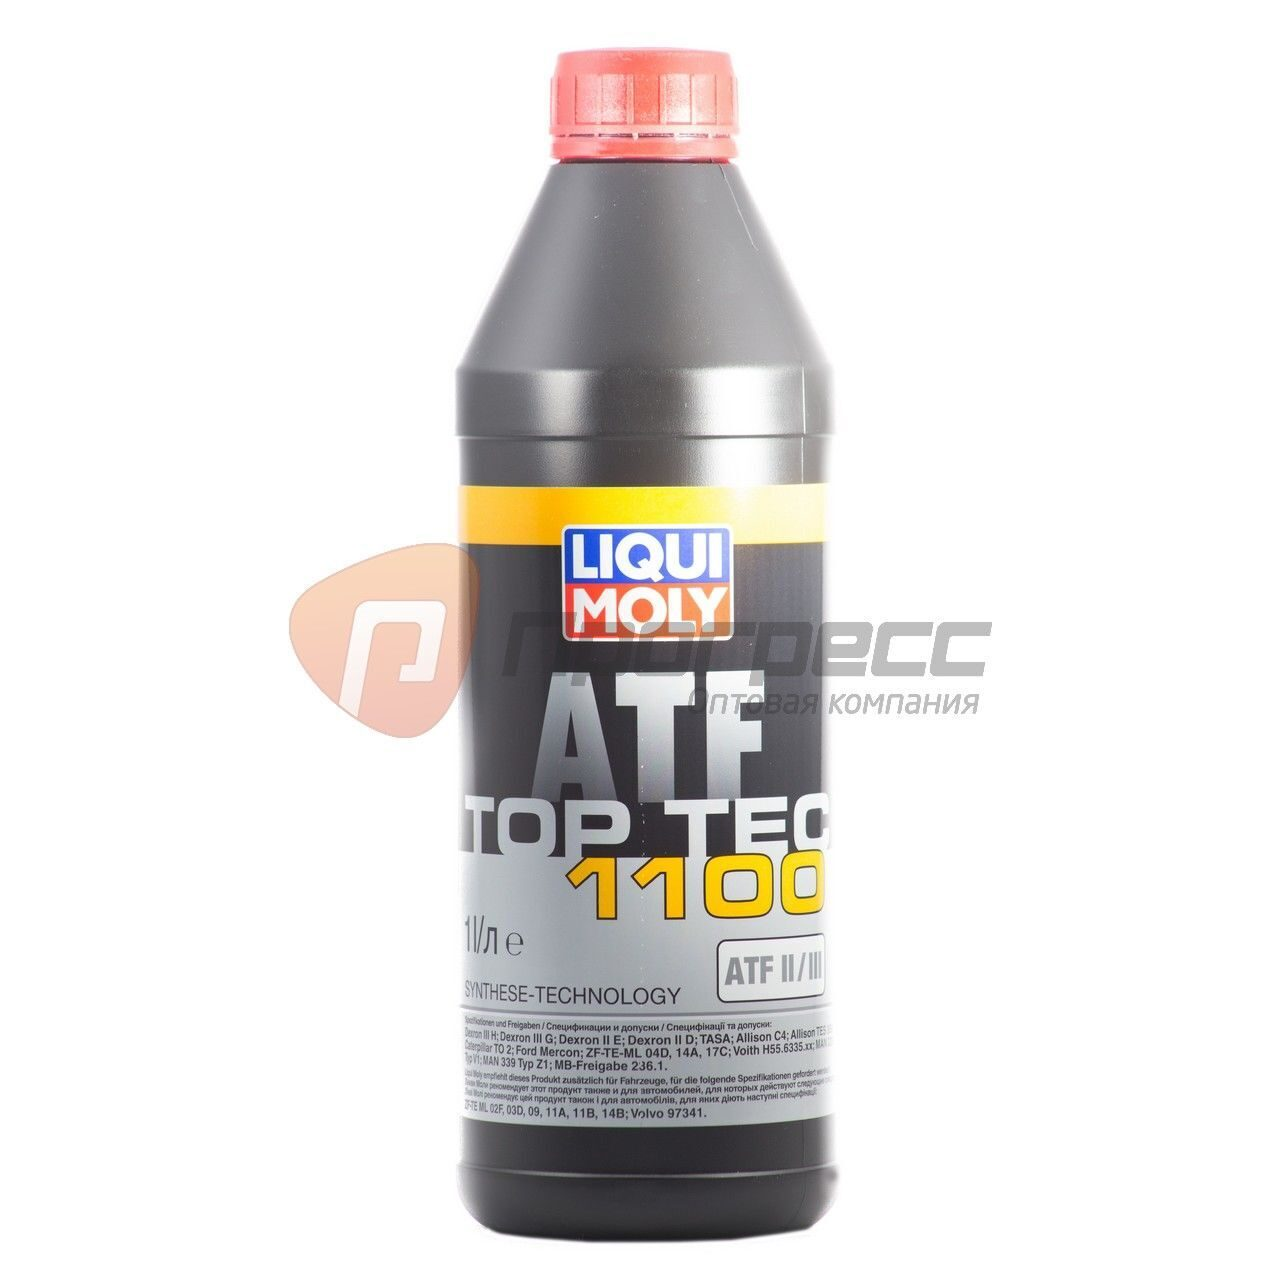 liqui moly top tec atf 1100. Black Bedroom Furniture Sets. Home Design Ideas